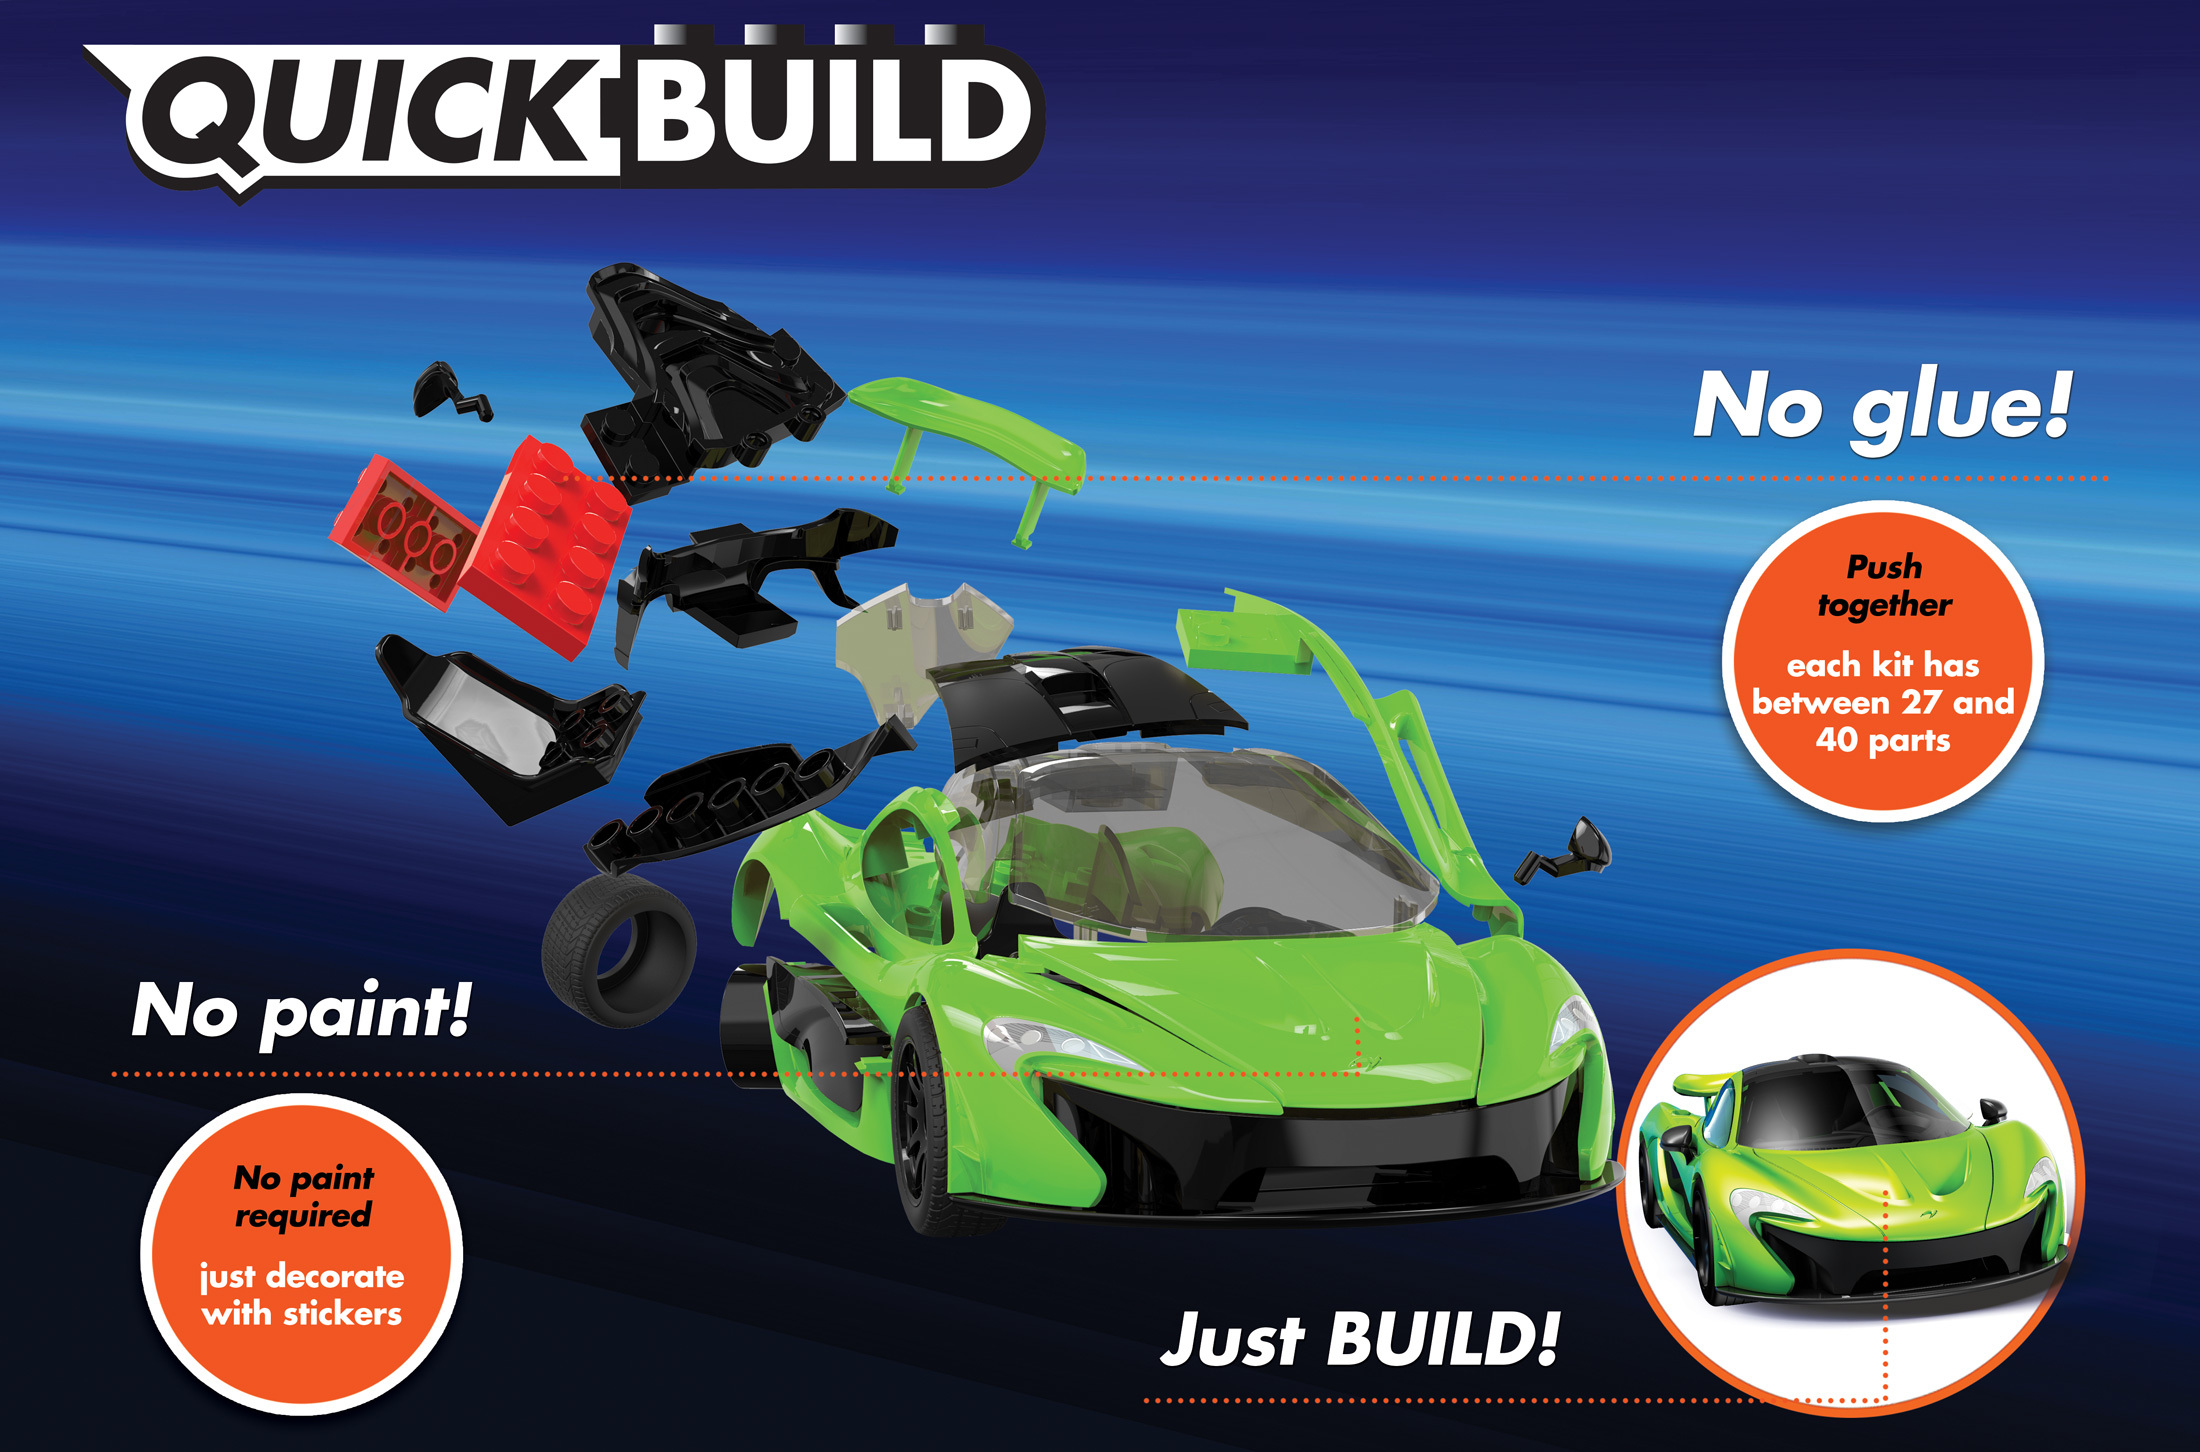 AIRFIX_QUICKBUILD